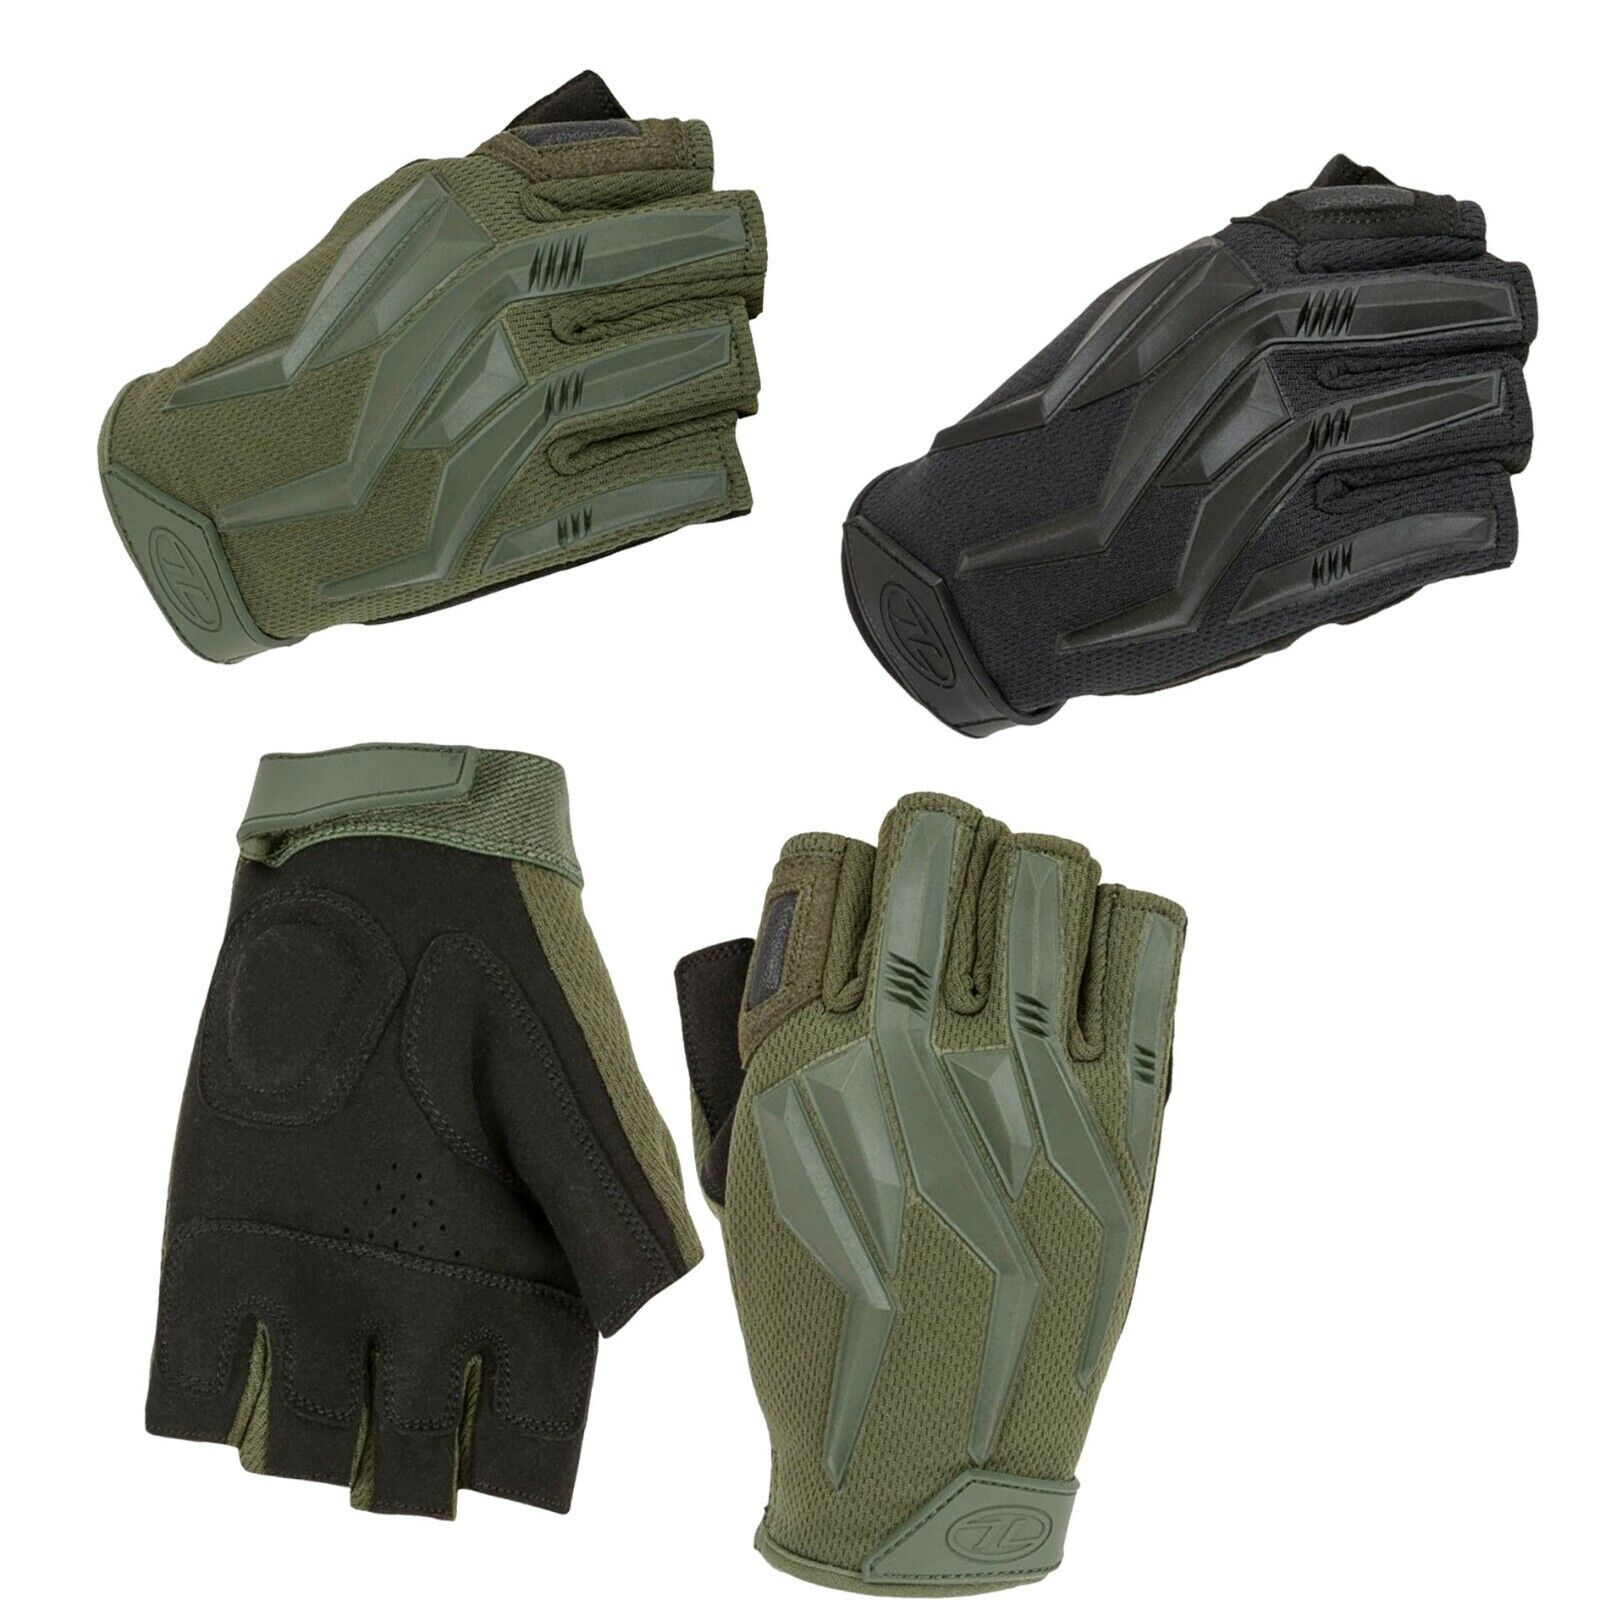 Raptor Fingerless Gloves | Impact | Contact | Protection